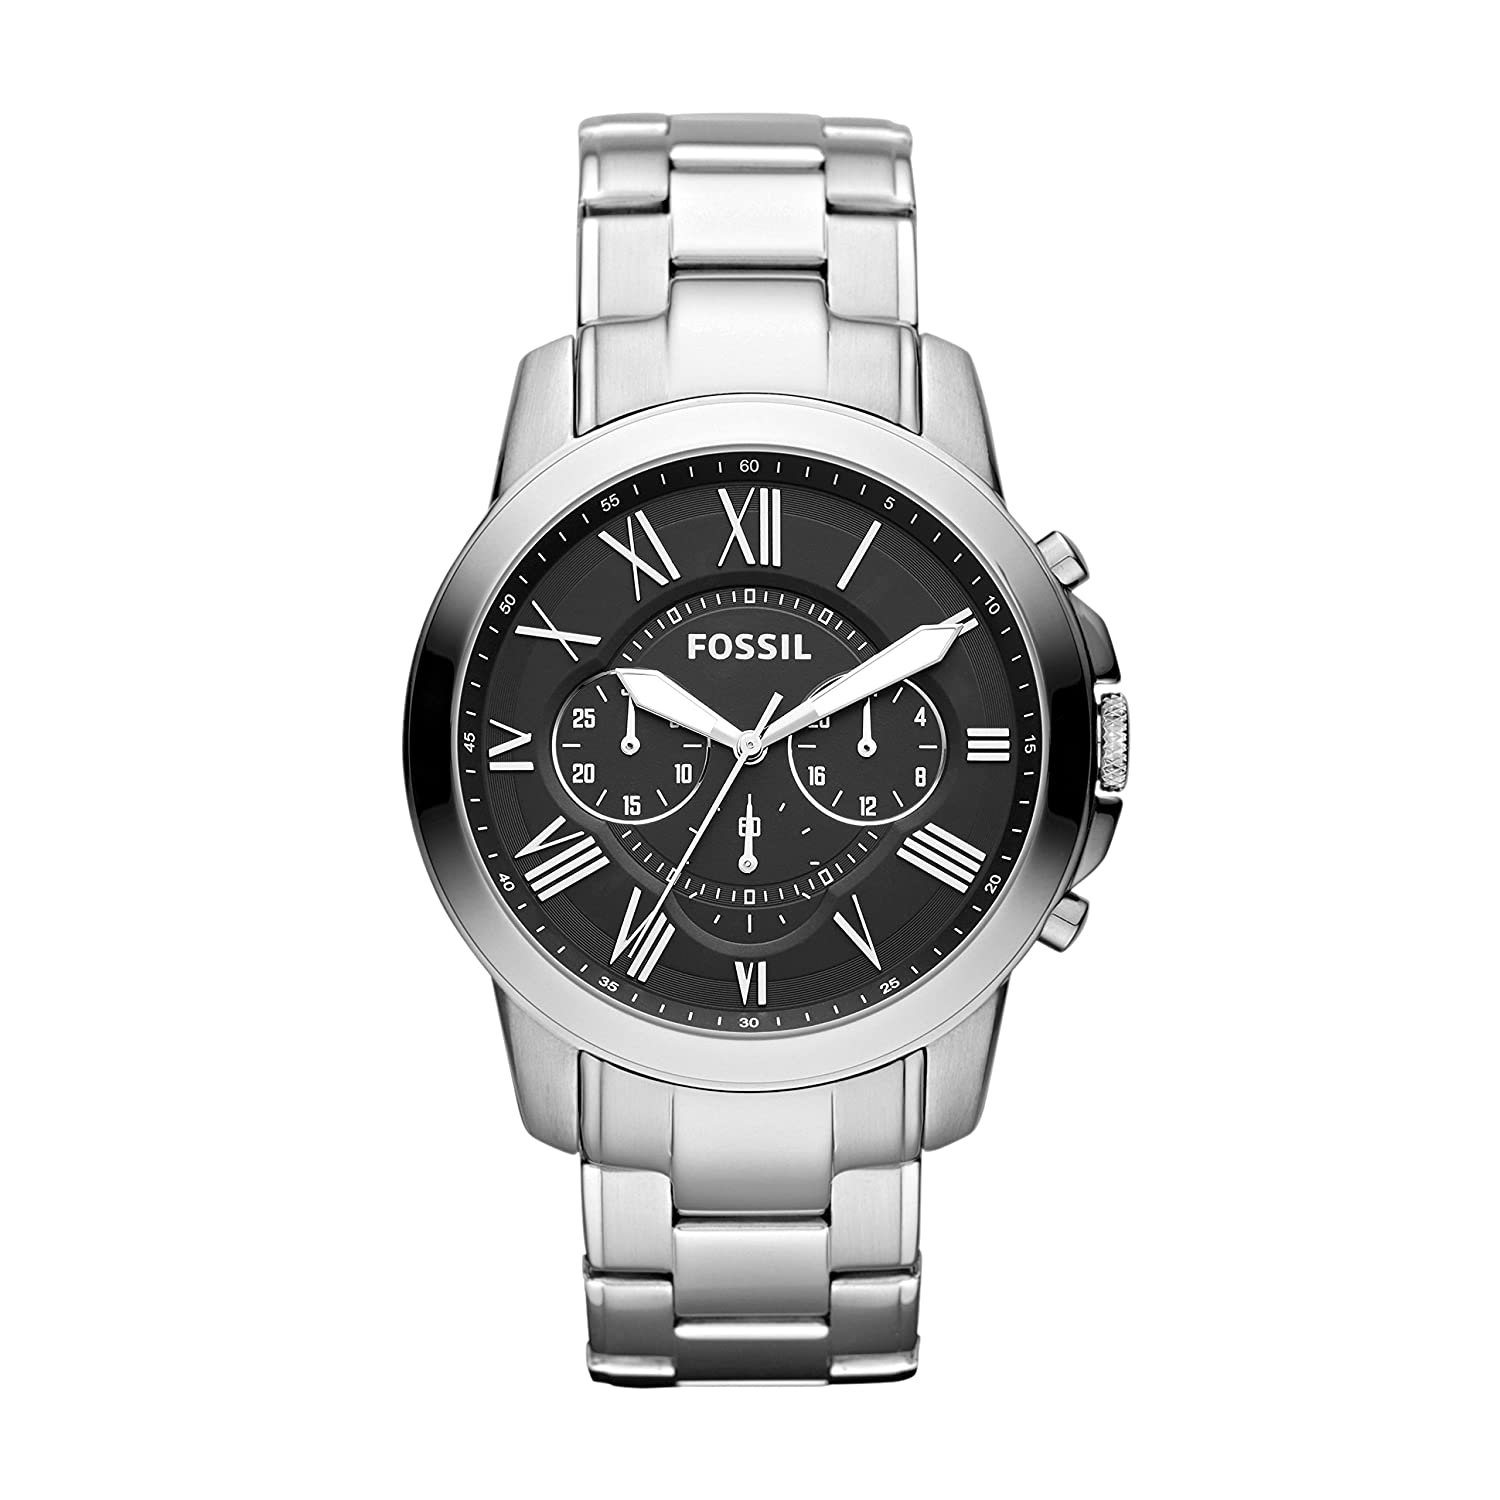 8ce4ec412 Amazon.com: Fossil Men's Grant Quartz Stainless Steel Chronograph Watch  Color: Silver (Model: FS4736IE): Fossil: Watches